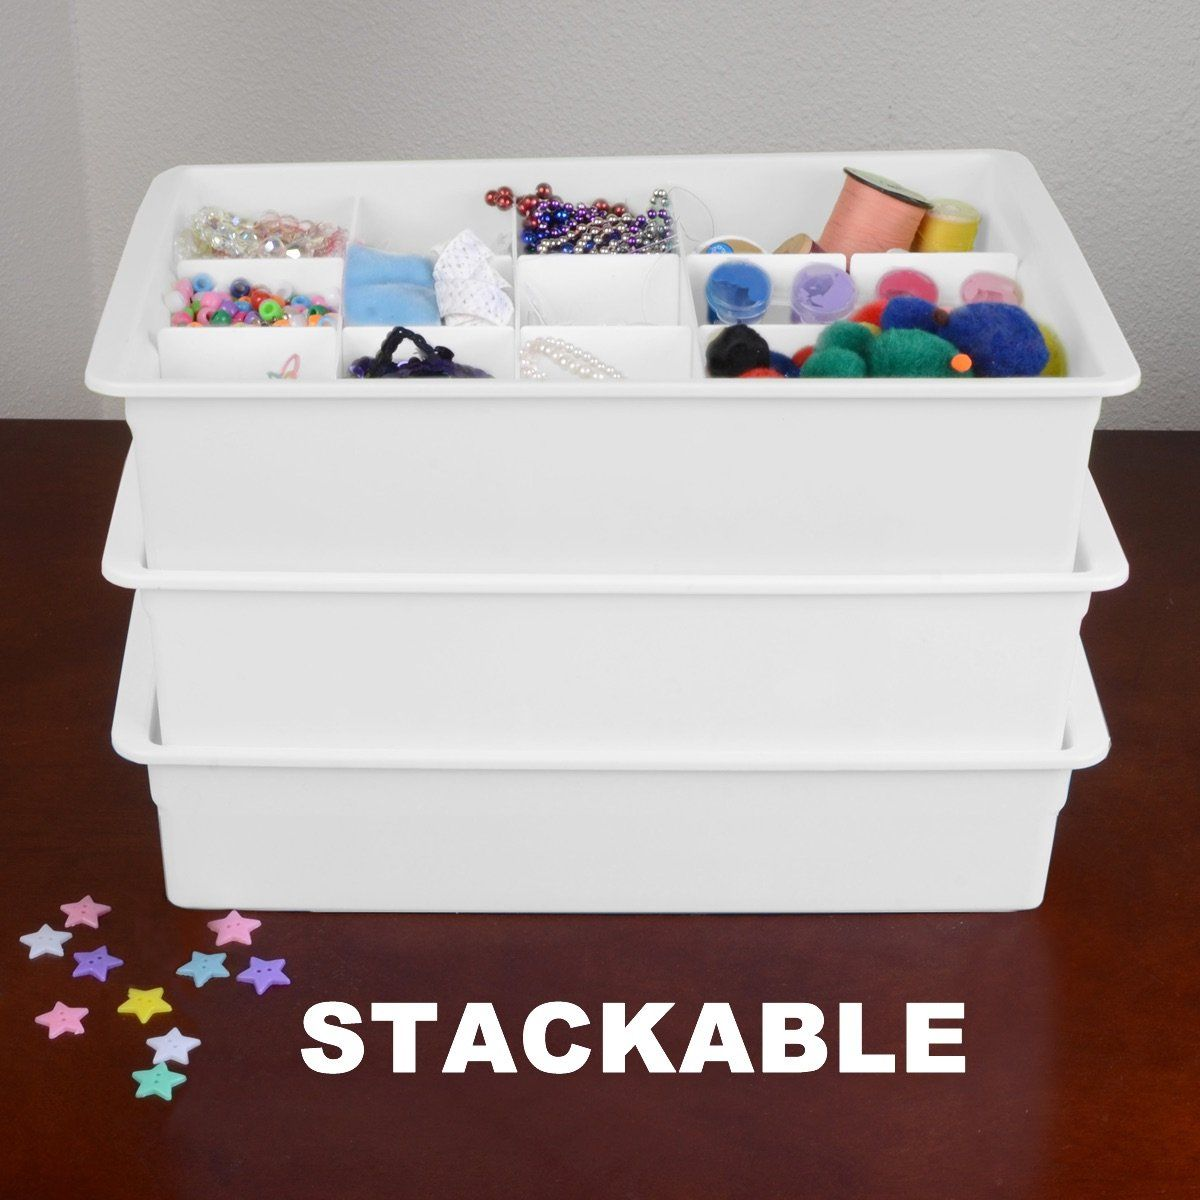 The Art Gallery Amazon Adjustable Drawer Organizers Set With Customizable Dividers in Stackable